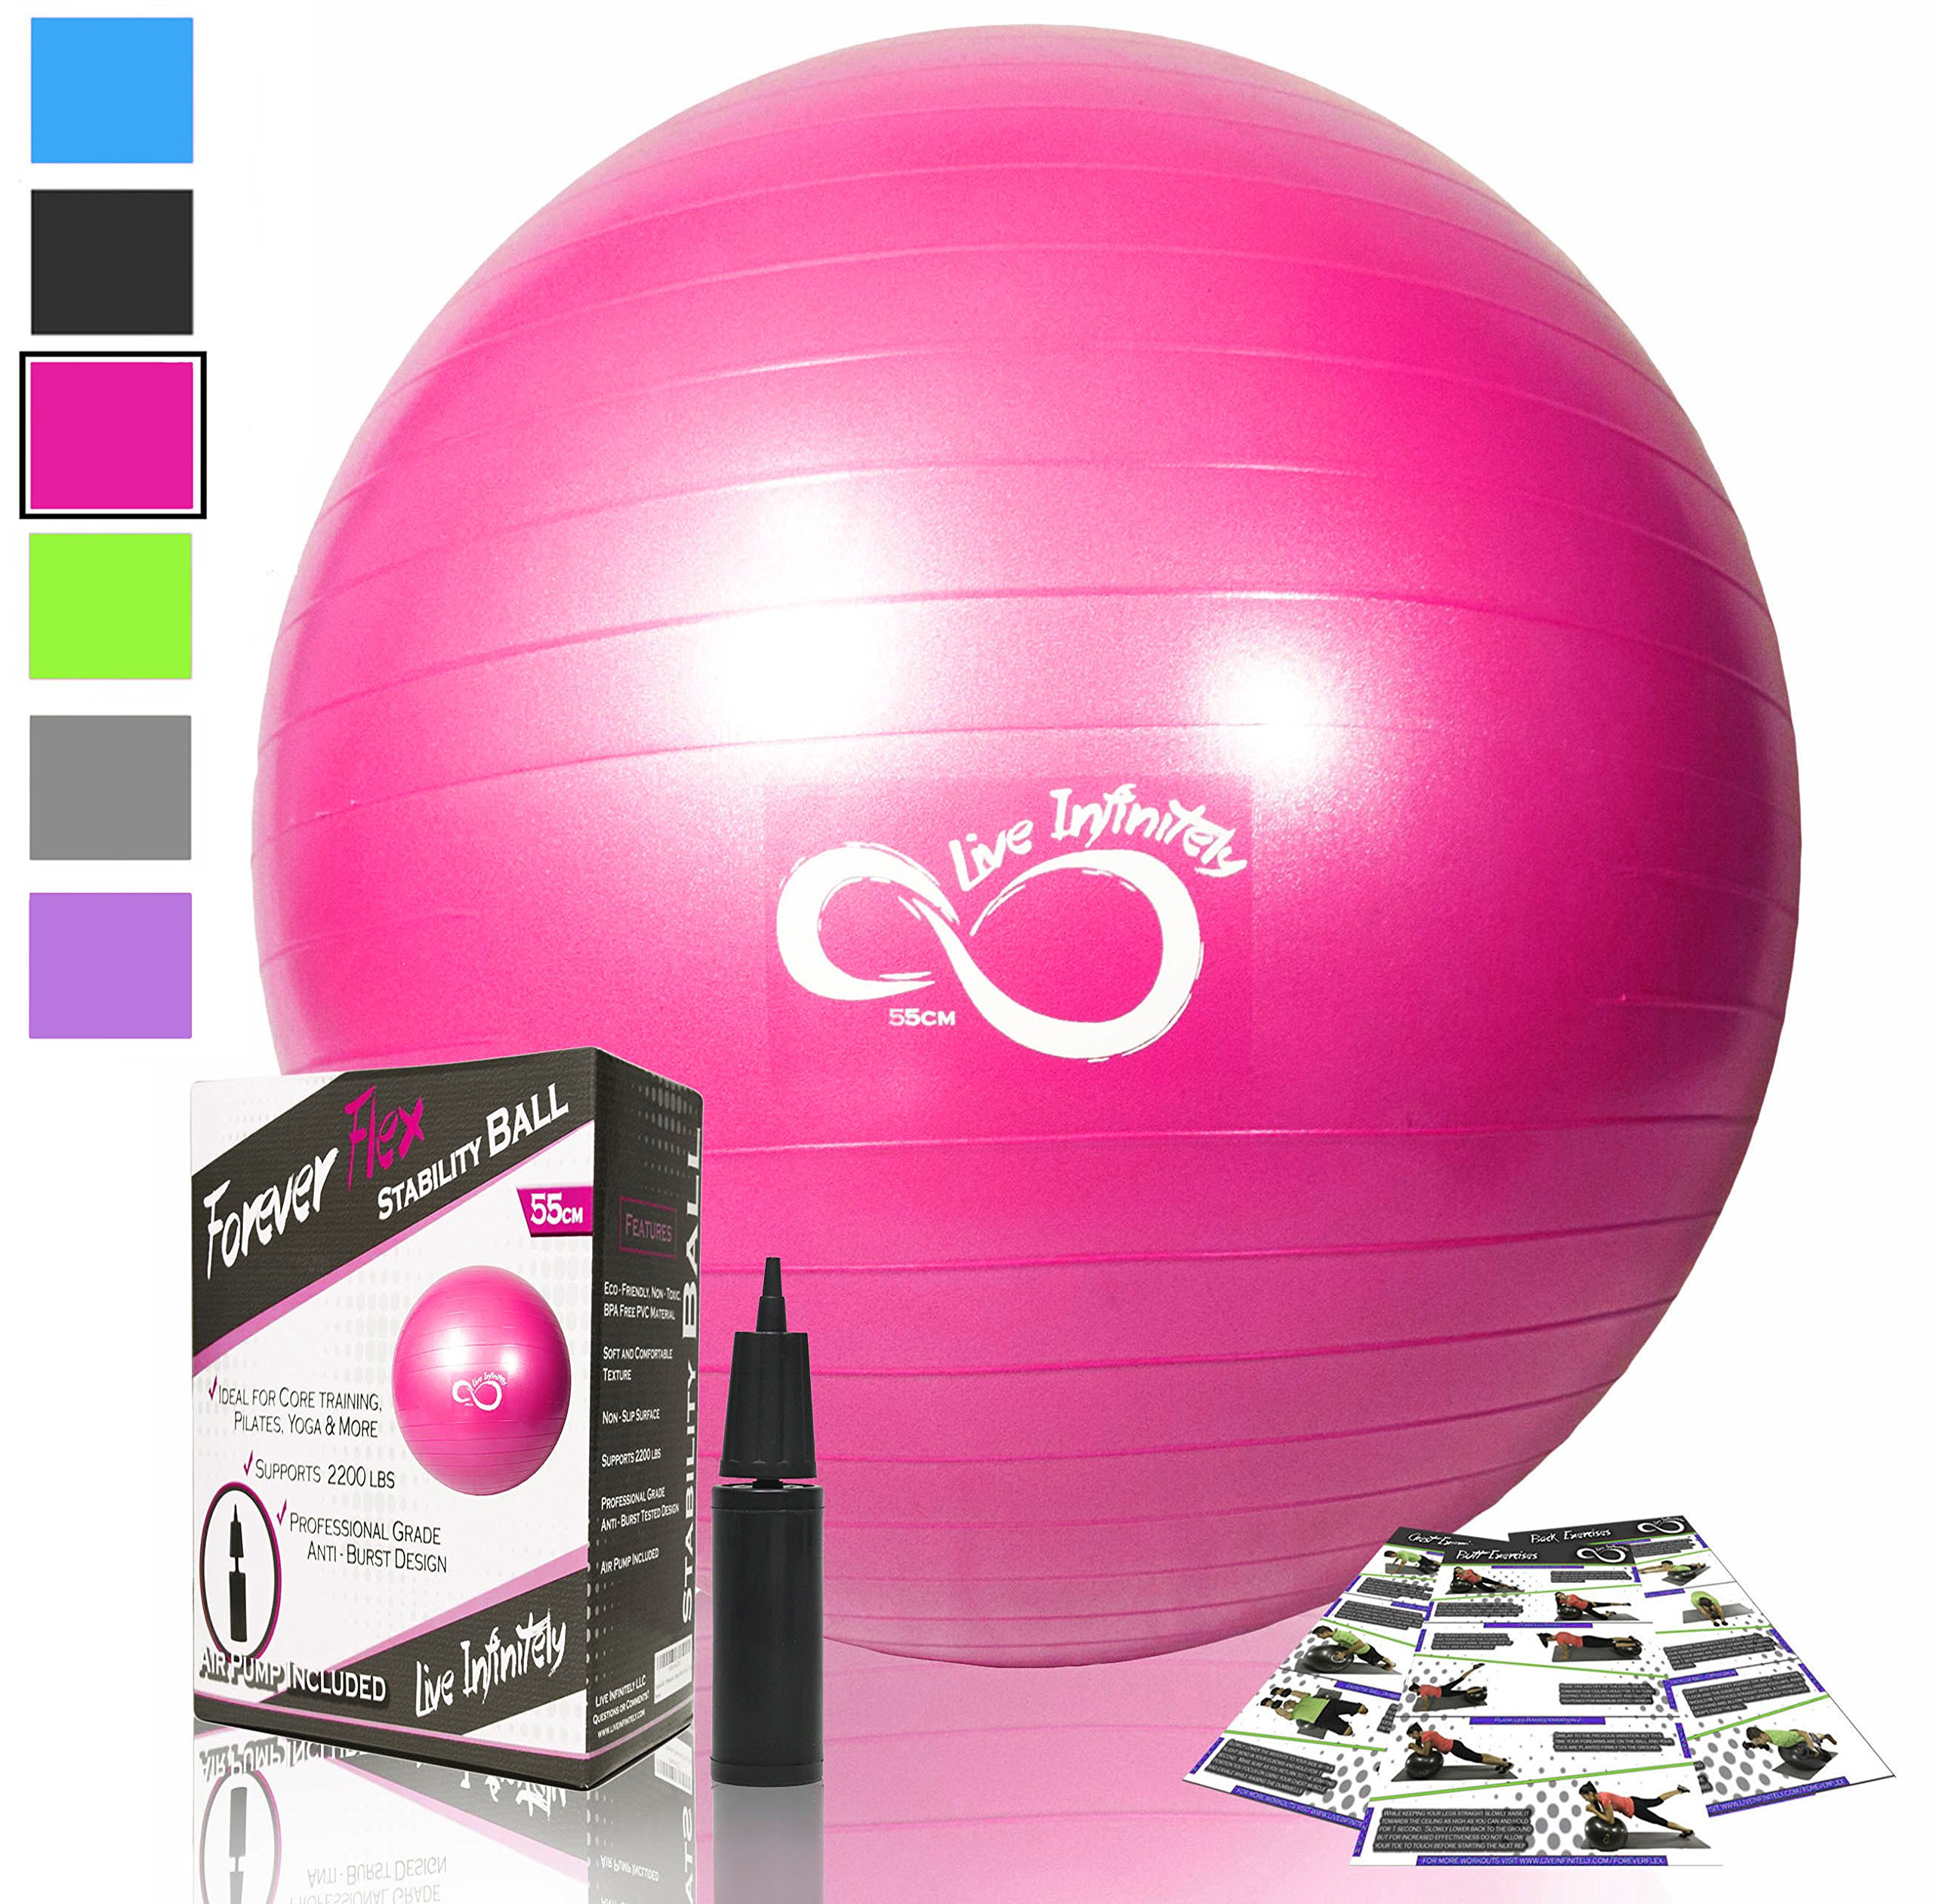 Live Infinitely Exercise Ball (55cm-95cm) Extra Thick Professional Grade Balance & Stability Ball- Anti Burst Tested Supports 2200lbs- Includes Hand Pump & Workout Guide Access Pink 55cm